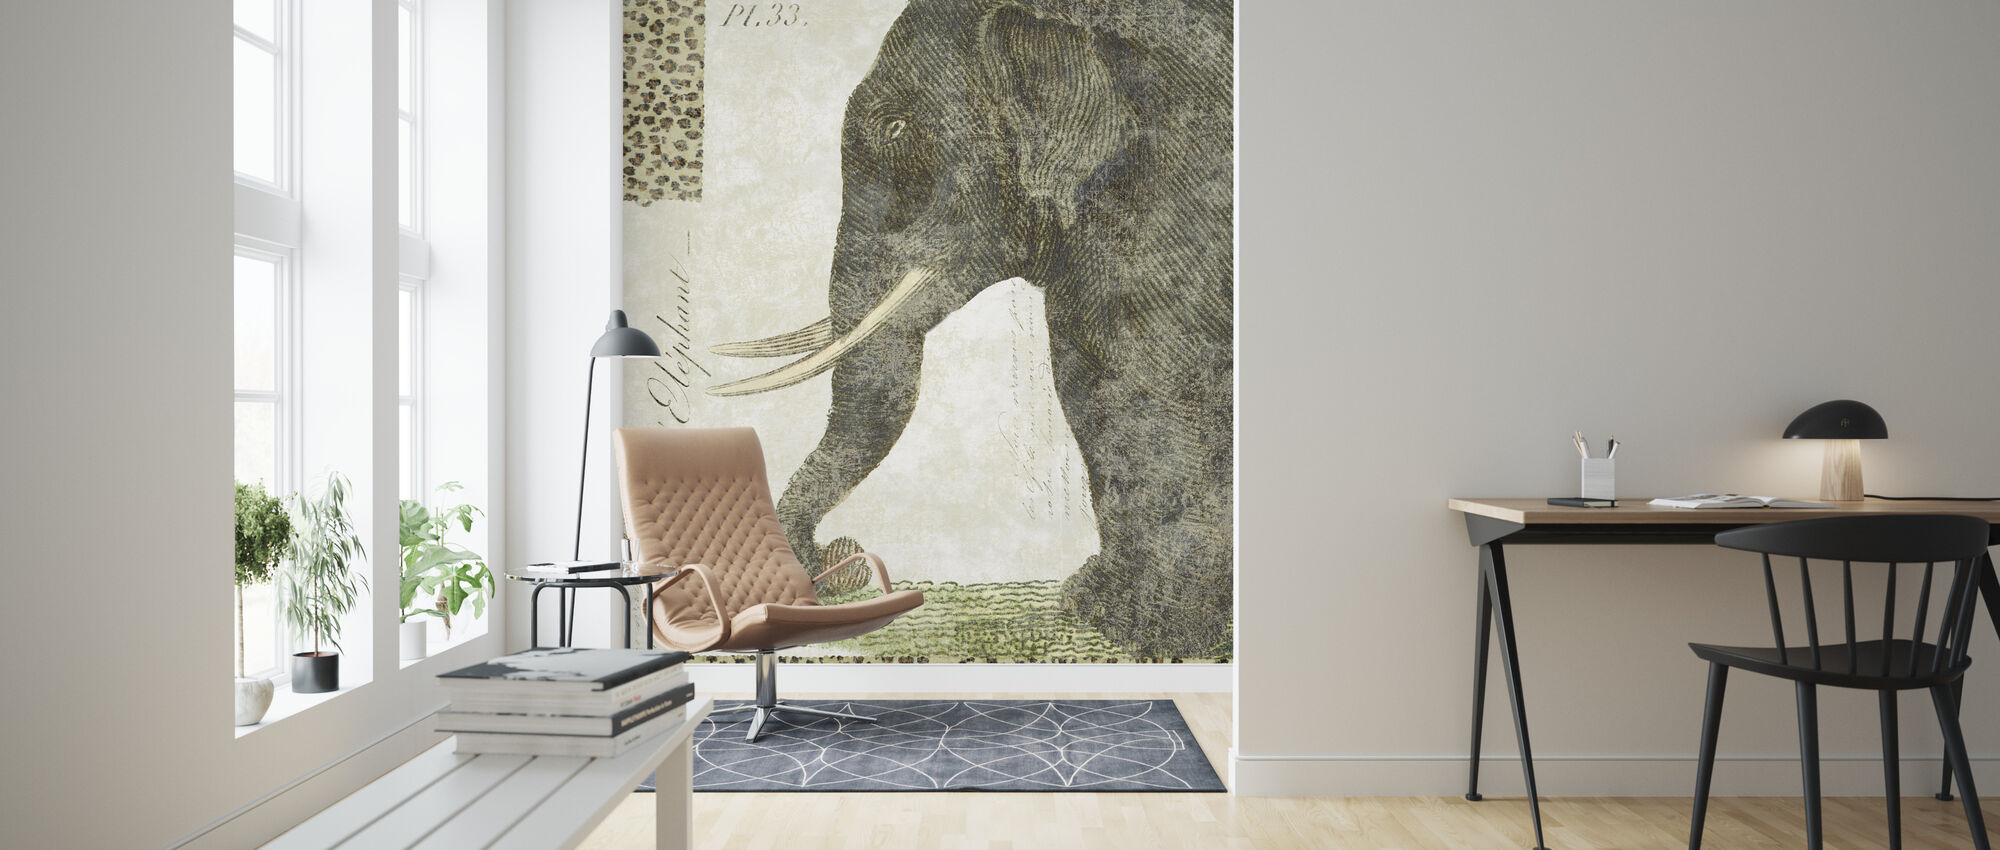 L Elephant - Wallpaper - Living Room